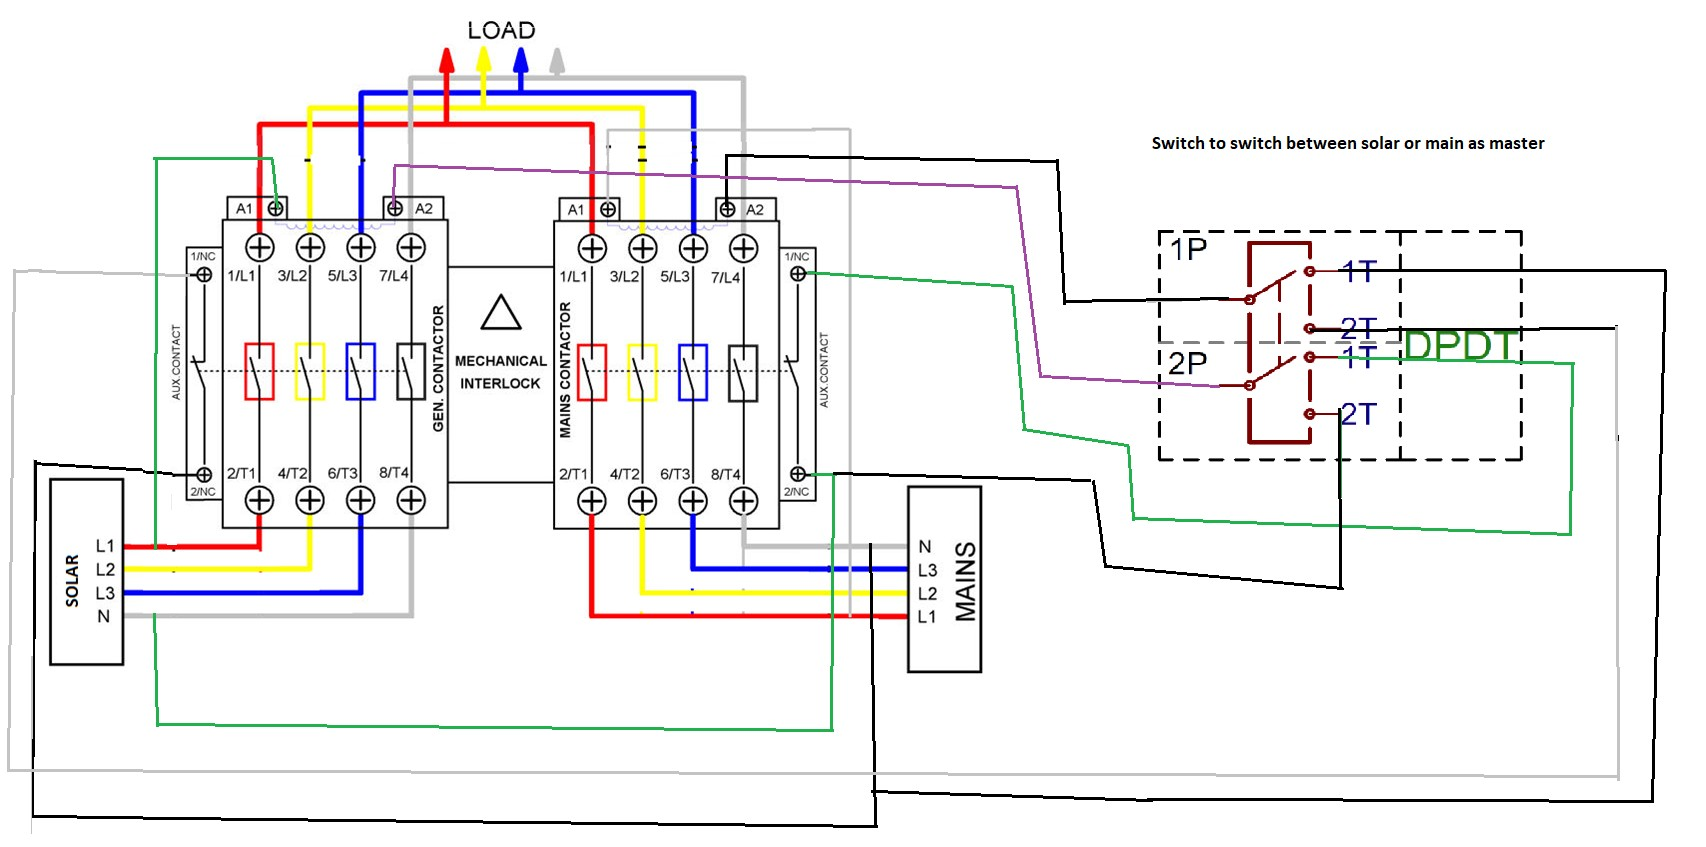 Diagram Reliance Generatorer Switch Wiring Automatic Rv Choose Between Generator Transfer Sample Wires Electrical System 1920